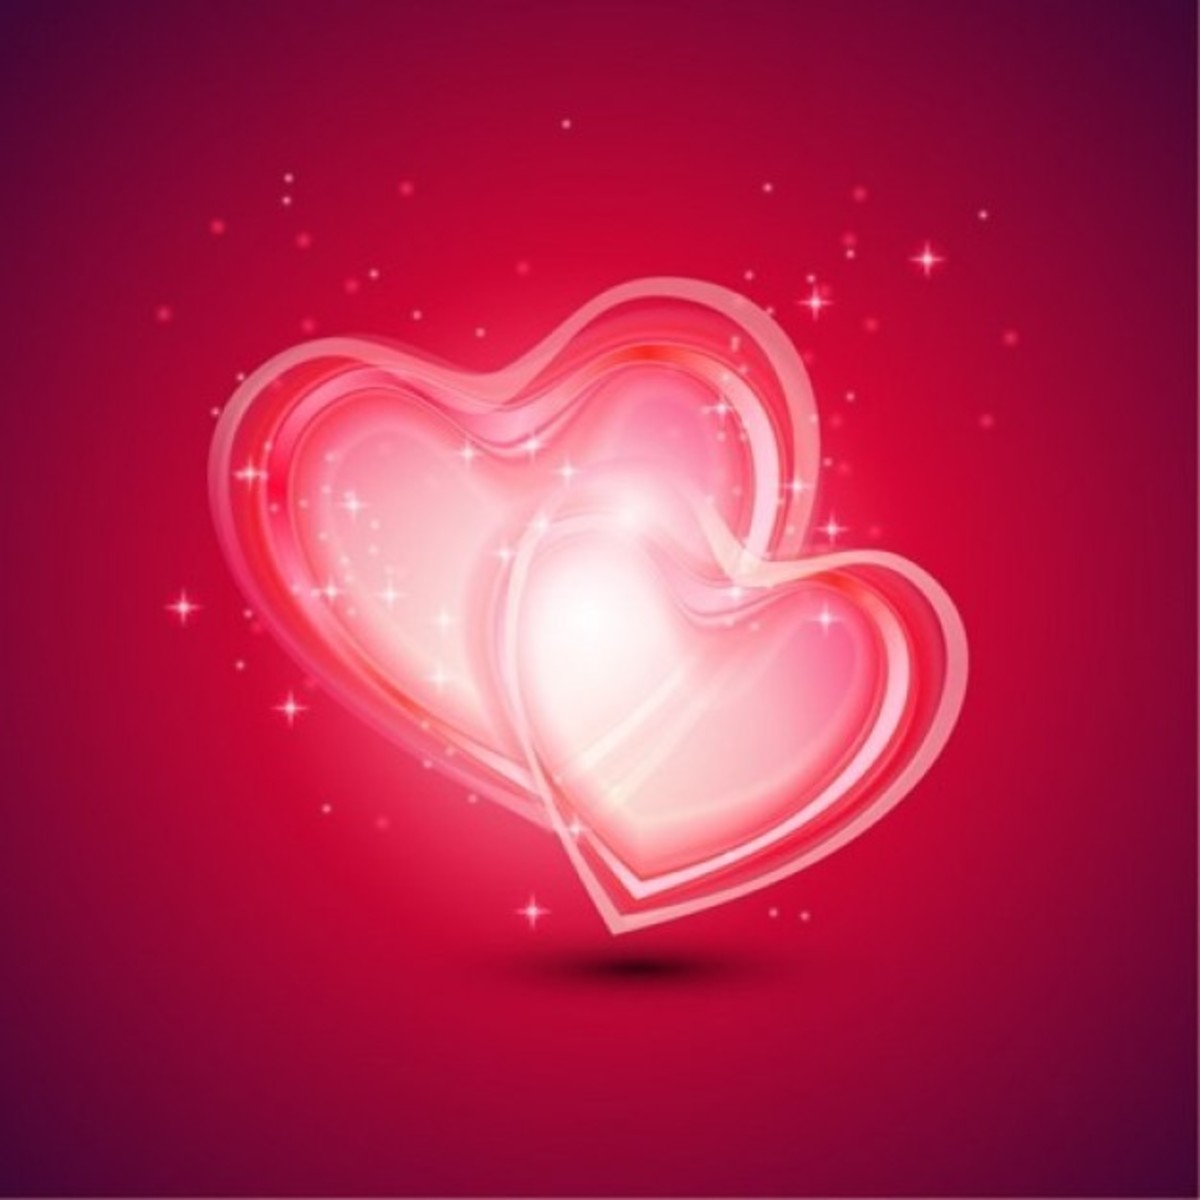 Glowing Hearts Picture